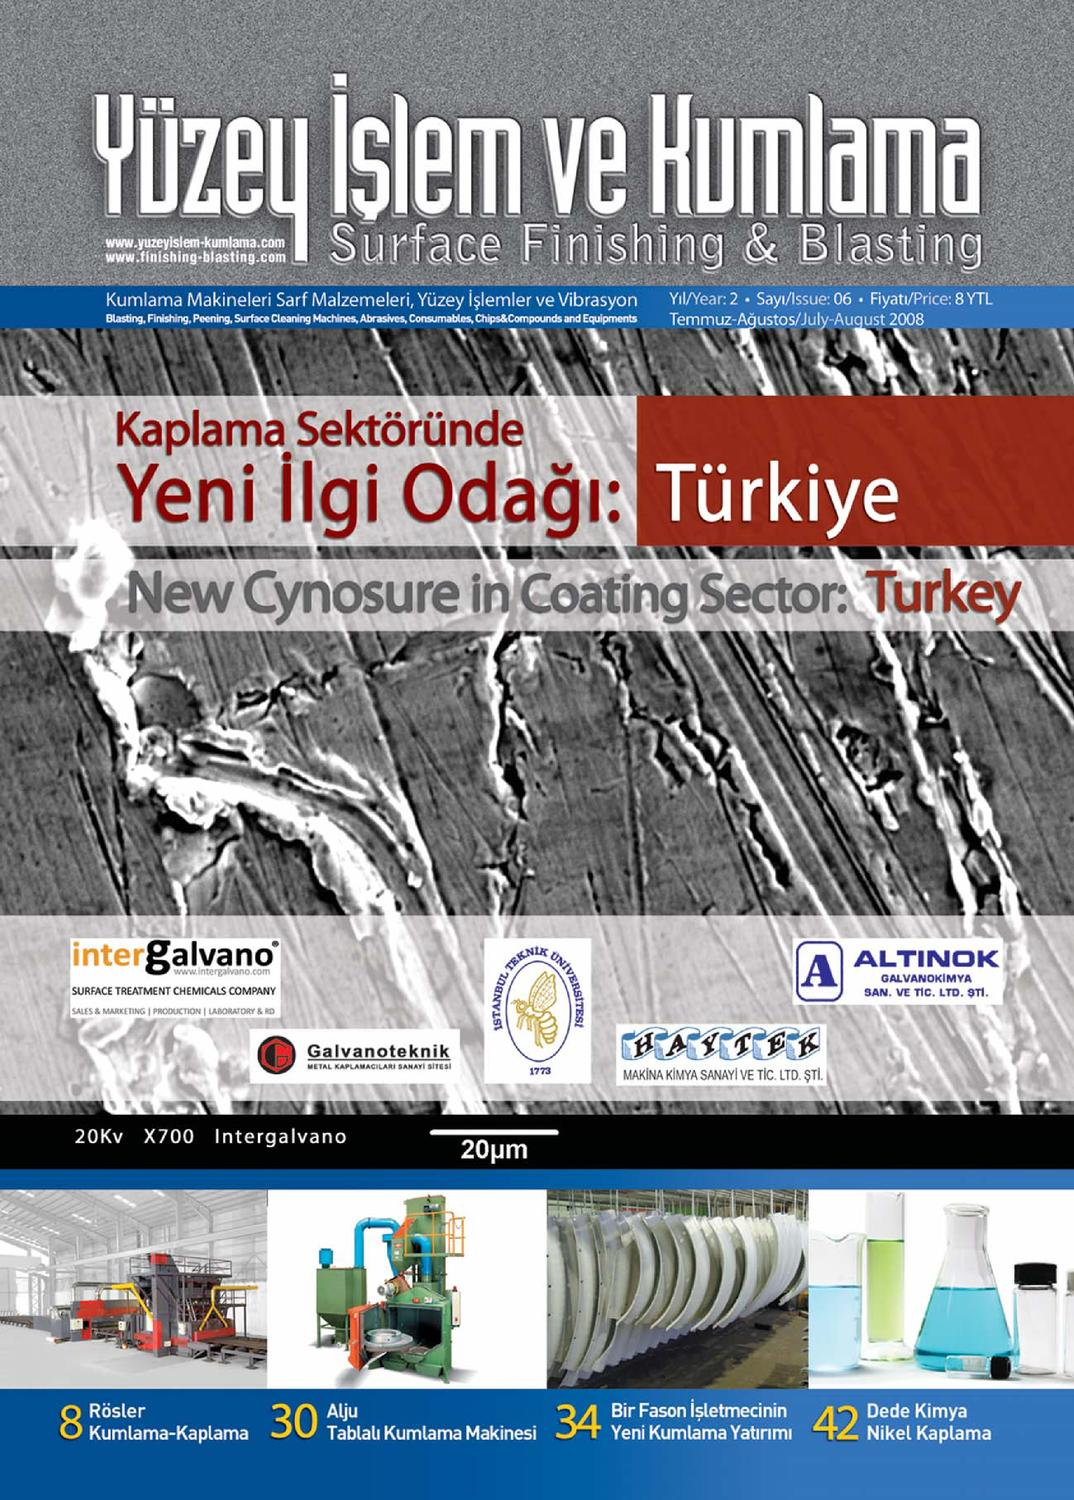 Yuzey Islem Ve Kumlama Dergisi Sayi6 By Surface Finishing Issuu